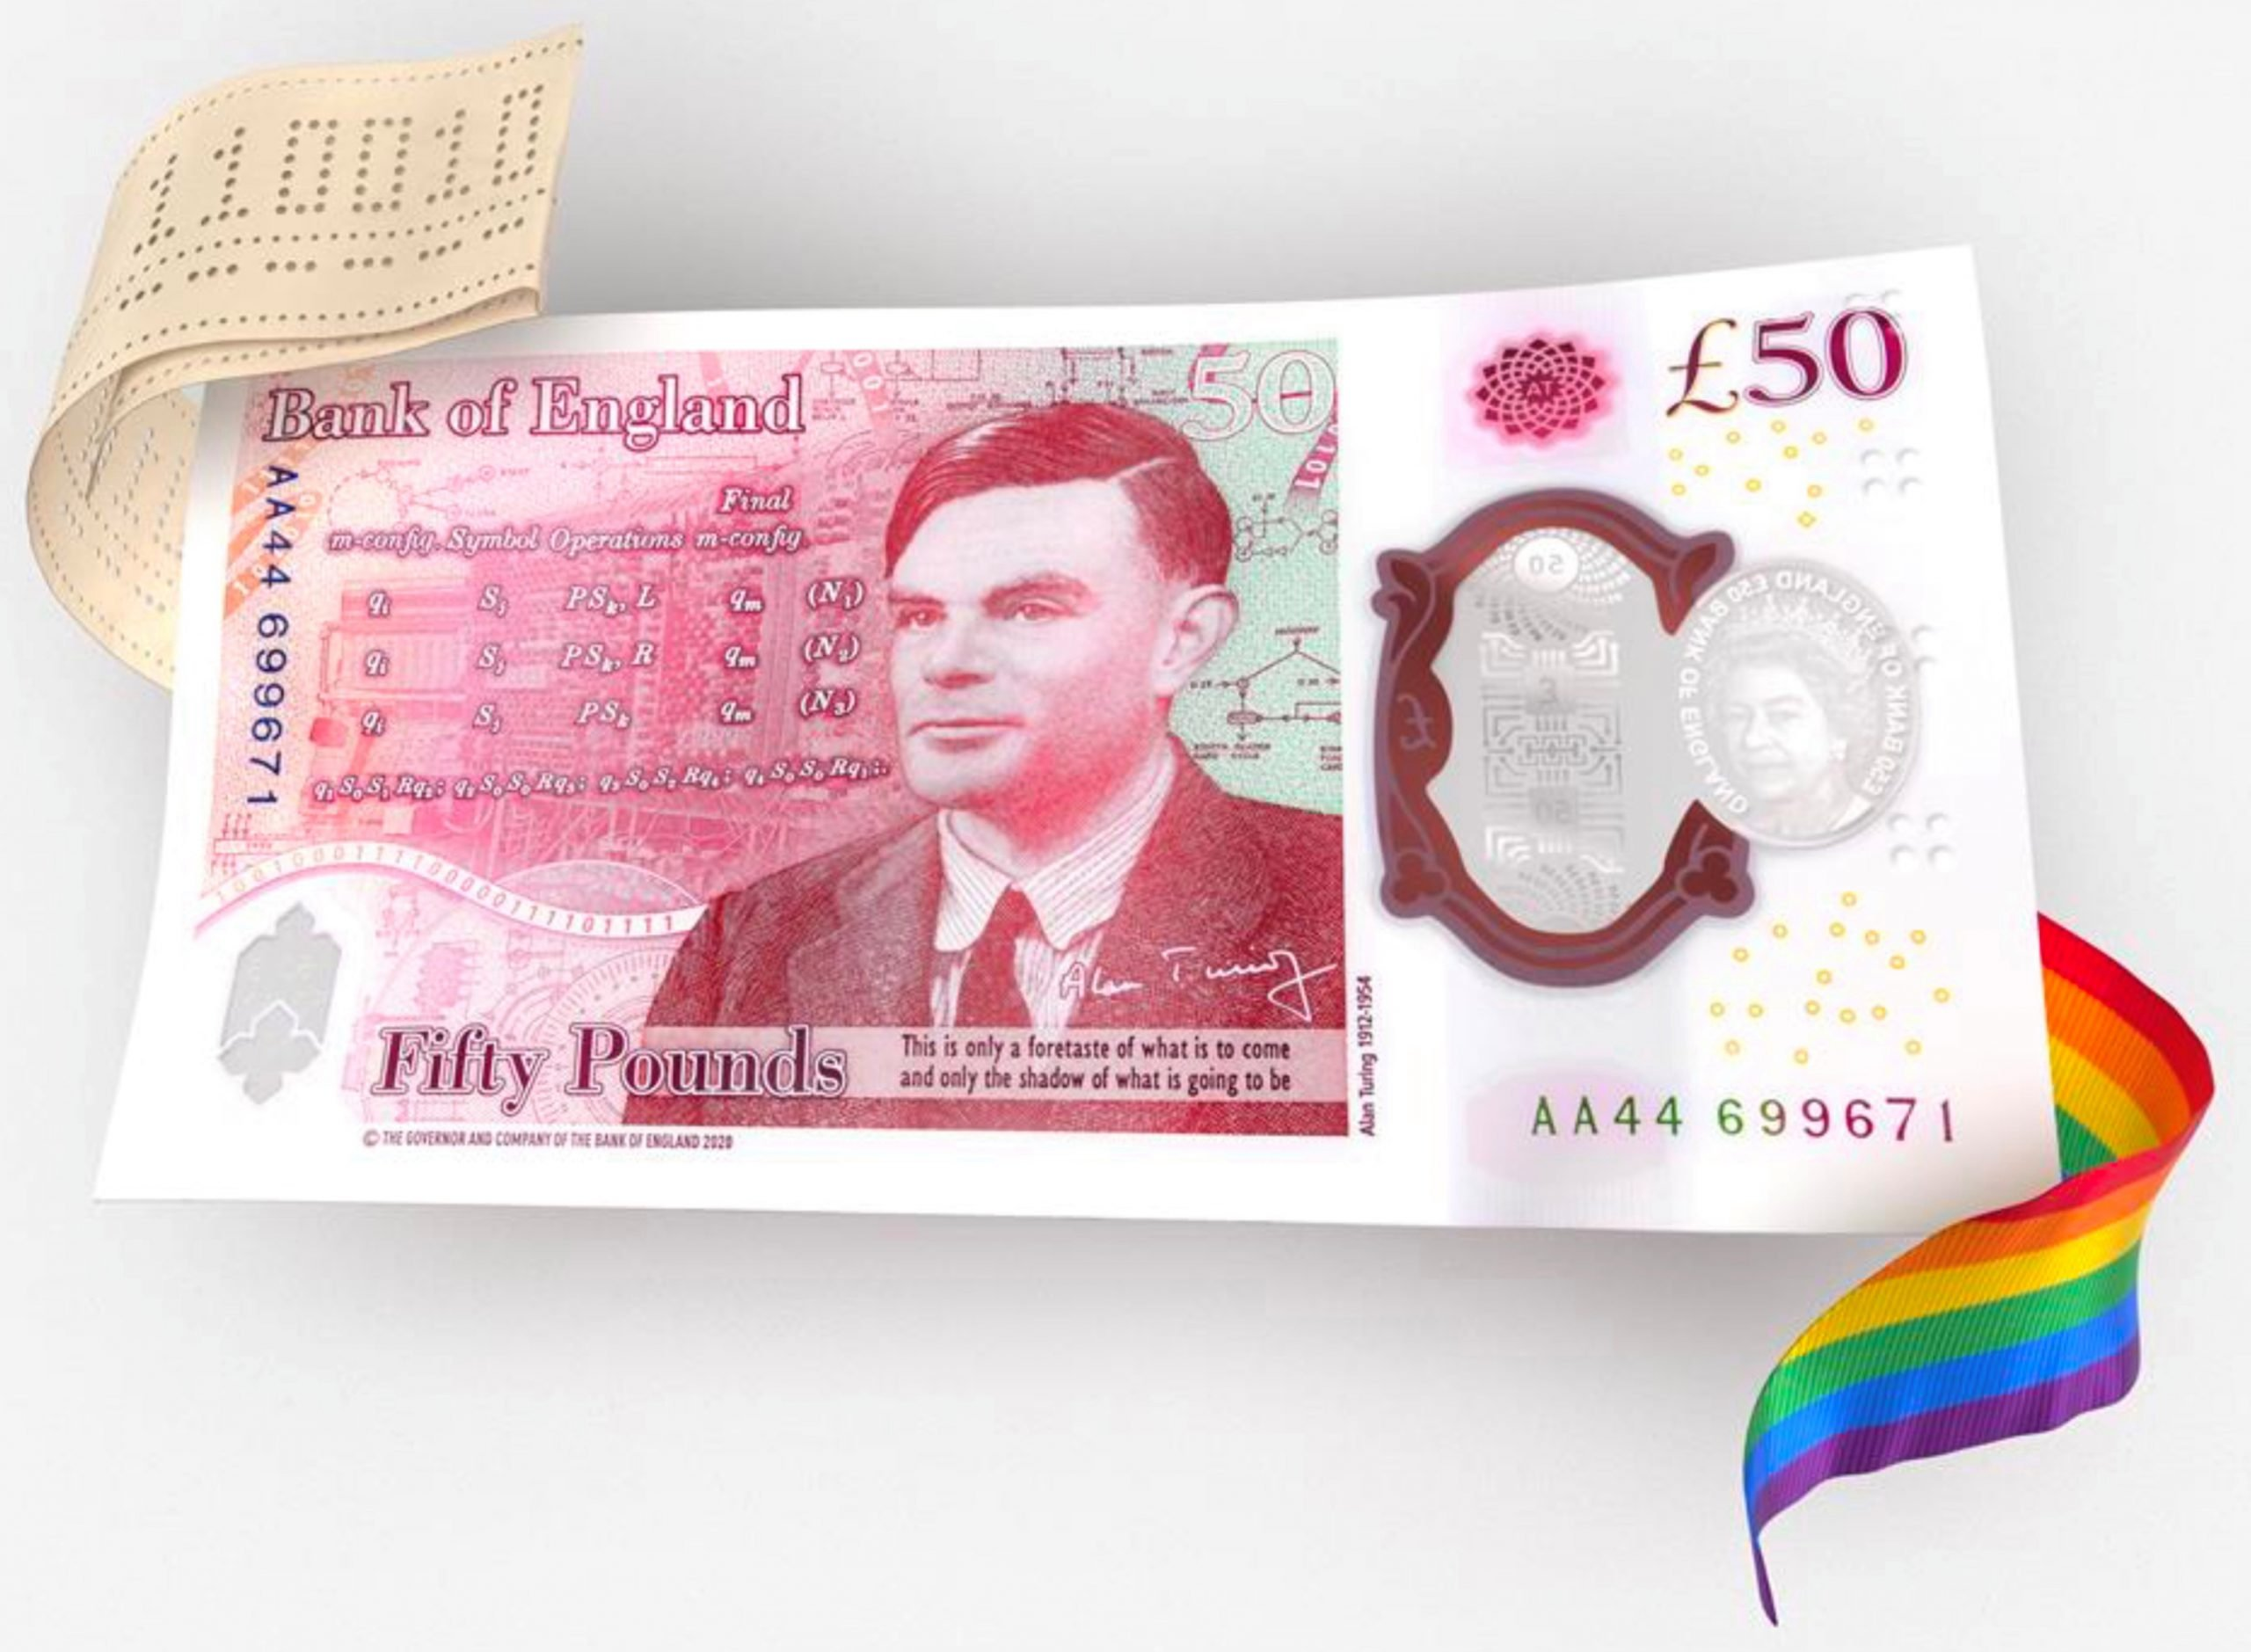 Alan Turing, gay and father of computing, is the new face of 50 pound notes